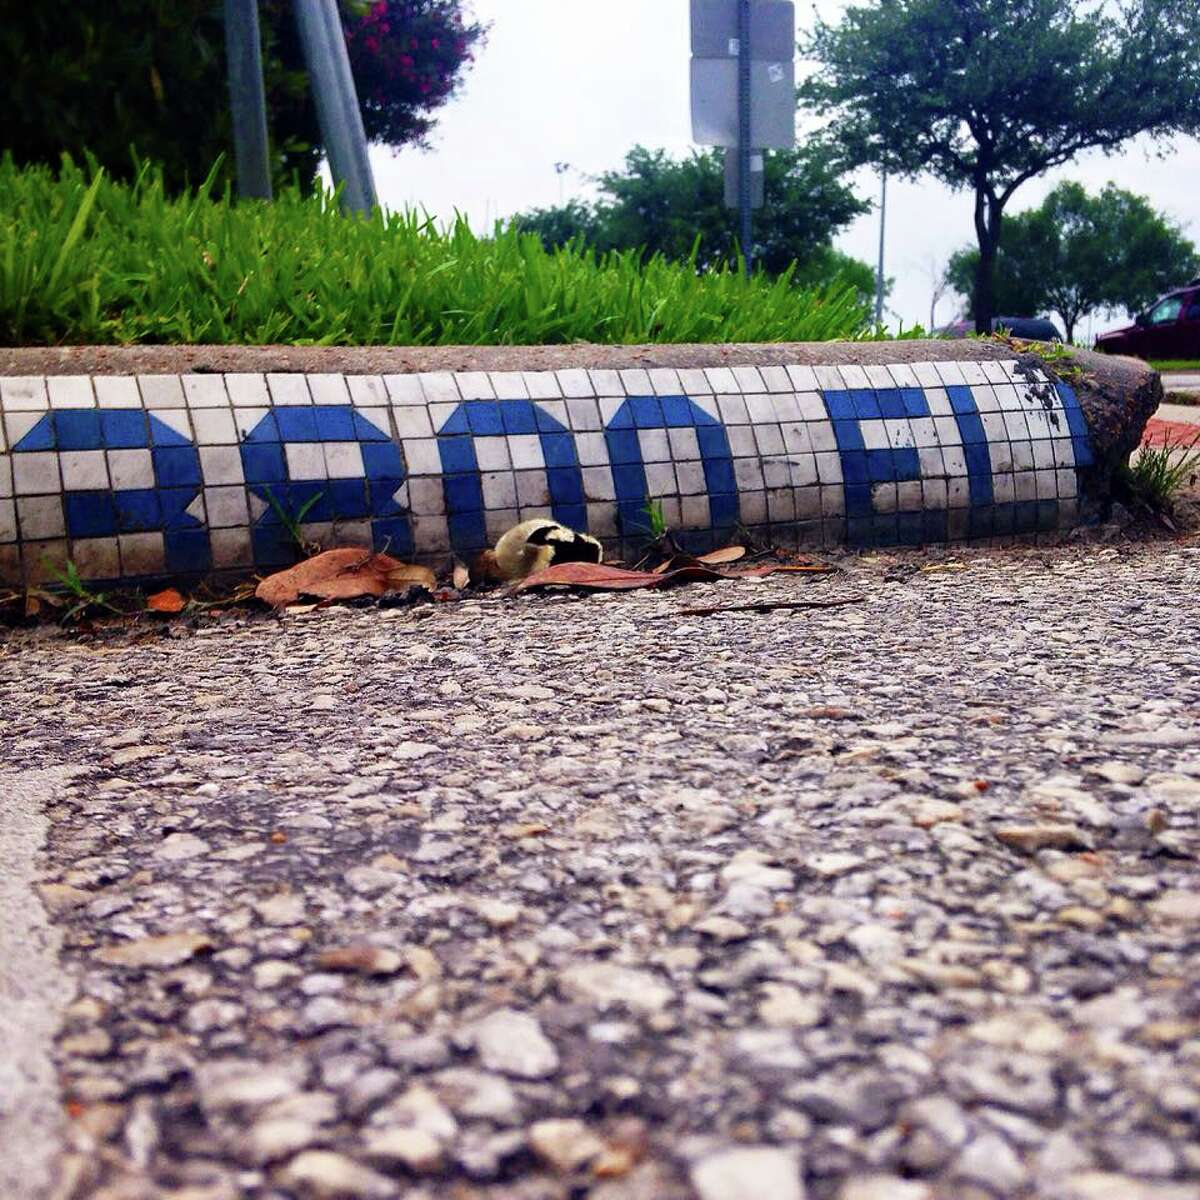 Houston resident Joey Sanchez is on a mission to locate and document every one of Houston's surviving vintage blue curb tiles. Some were installed nearly a century ago and most have been lost to urban development. Sanchez takes photo submissions via his official website and an Instagram hash tag, #BlueTileProject.